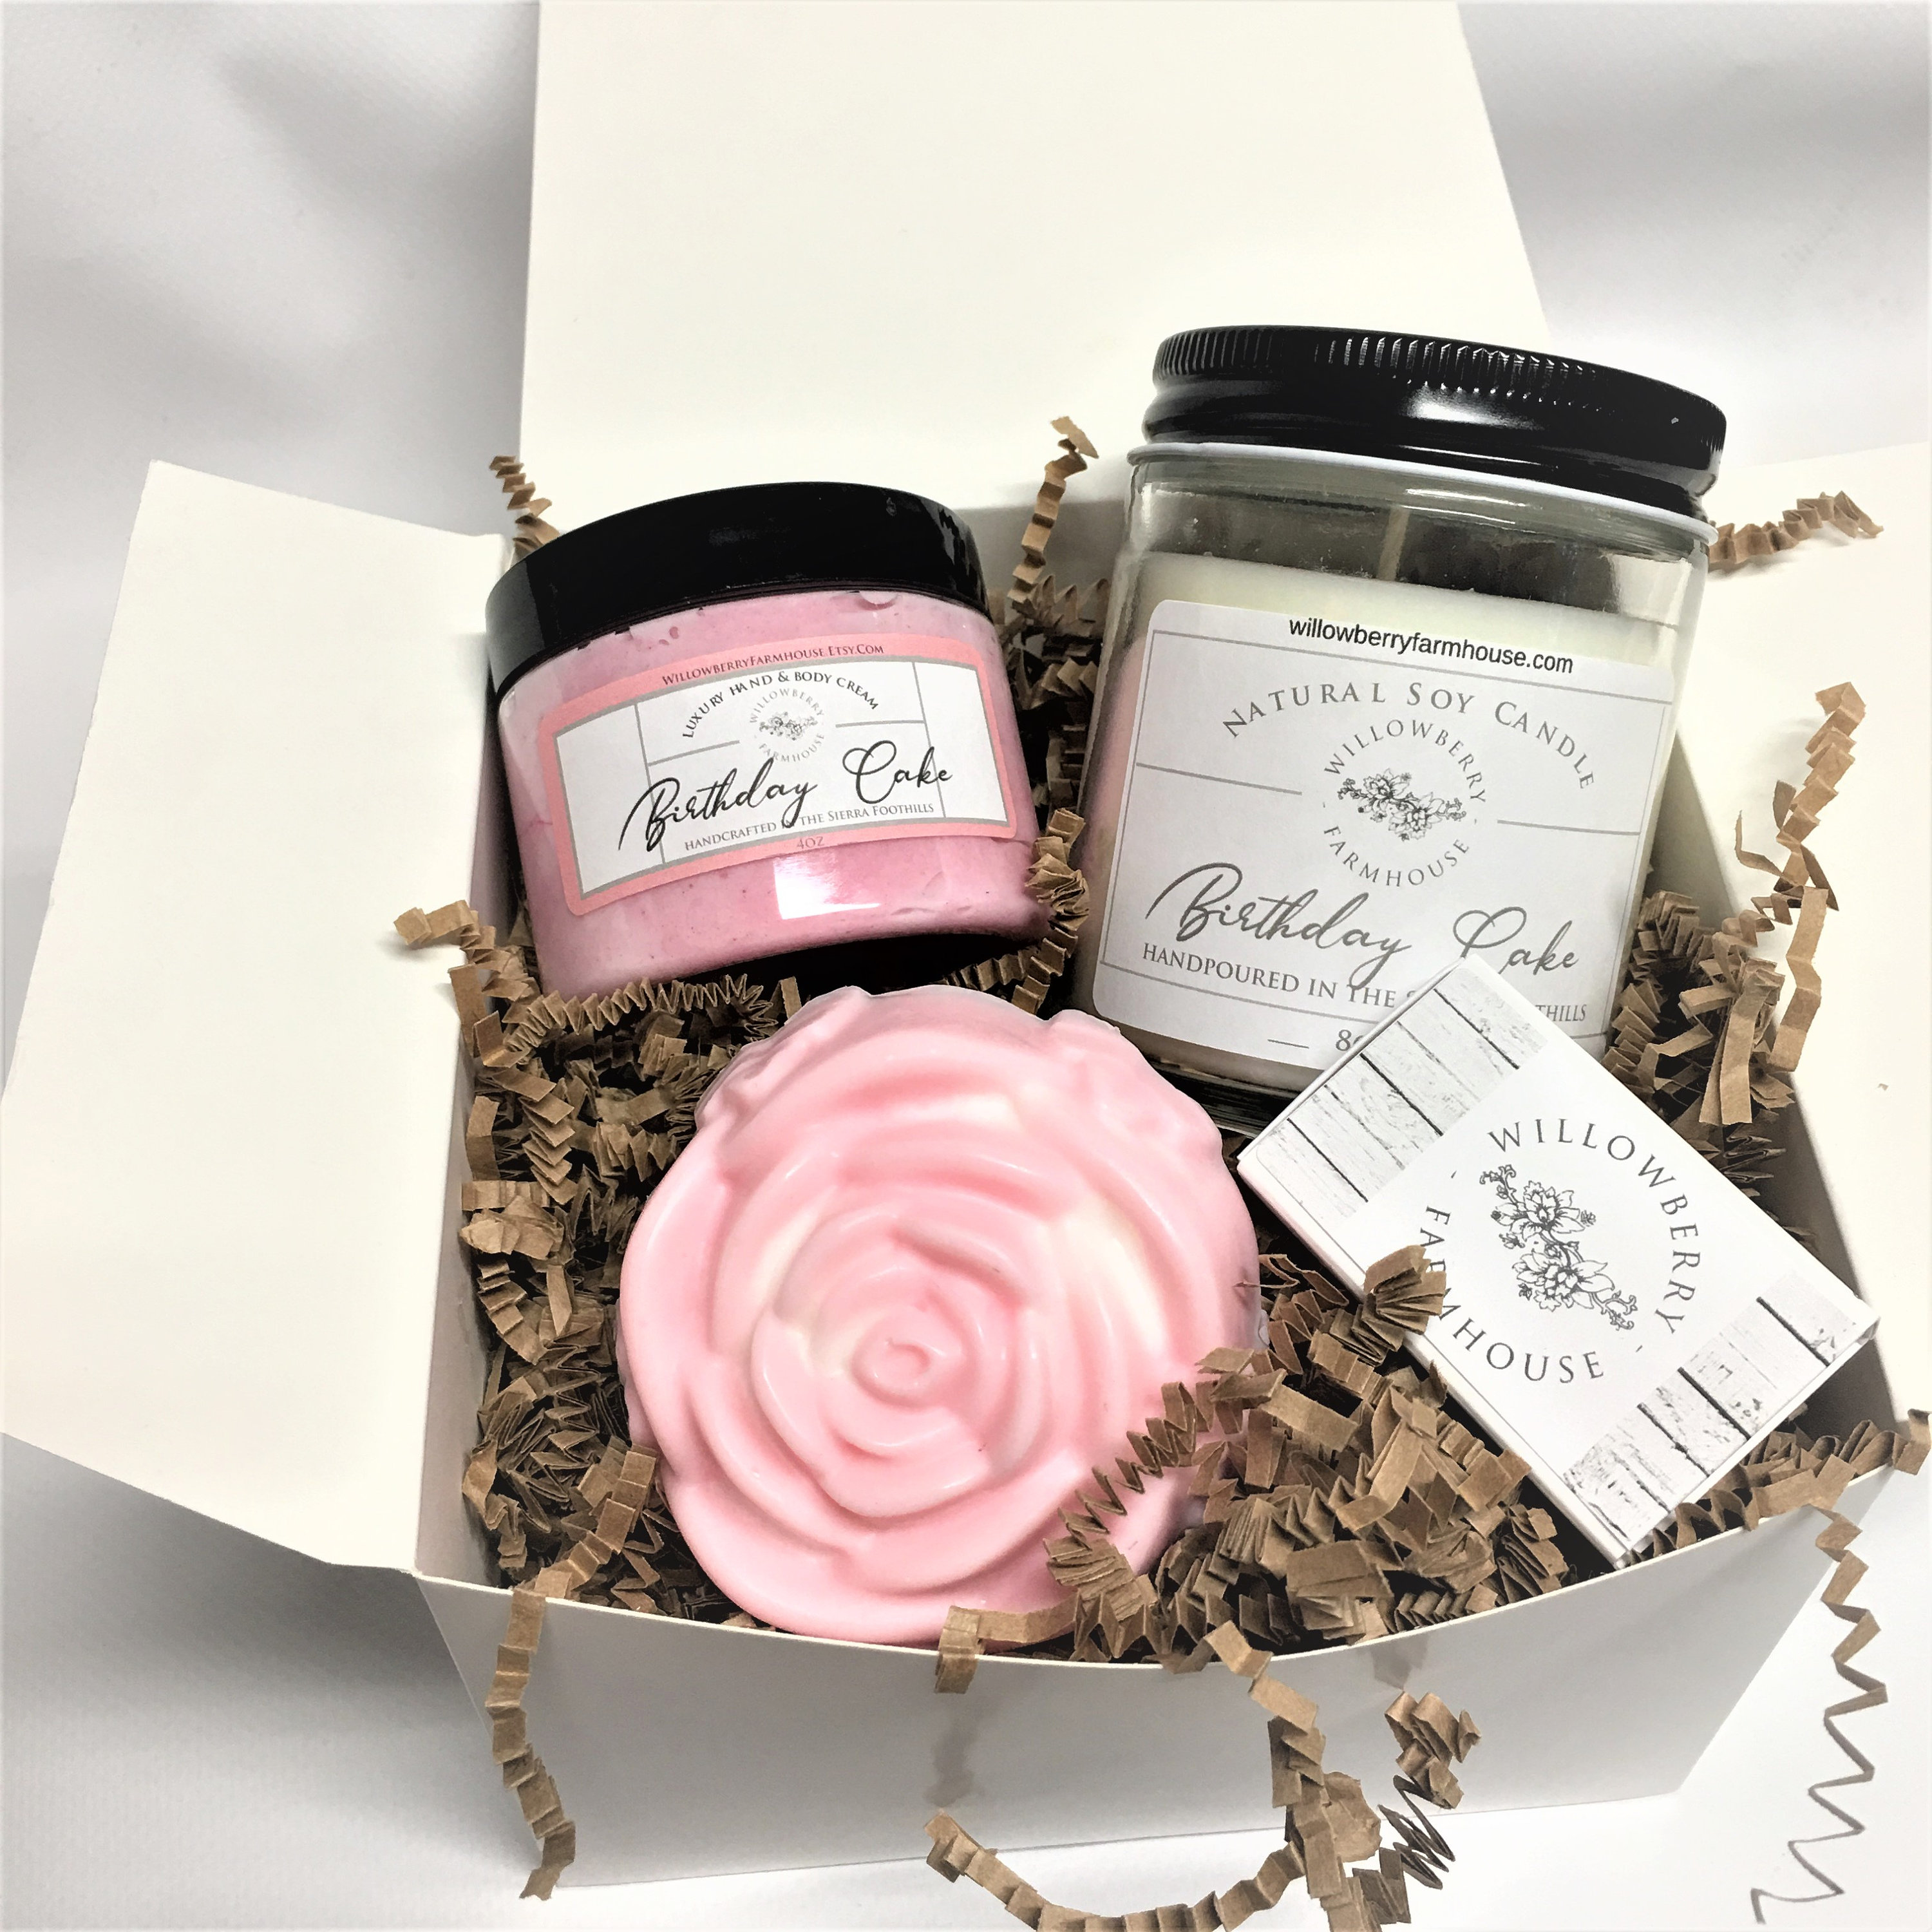 Best Friend Birthday Gifts For Gift Mom Box Ideas Her